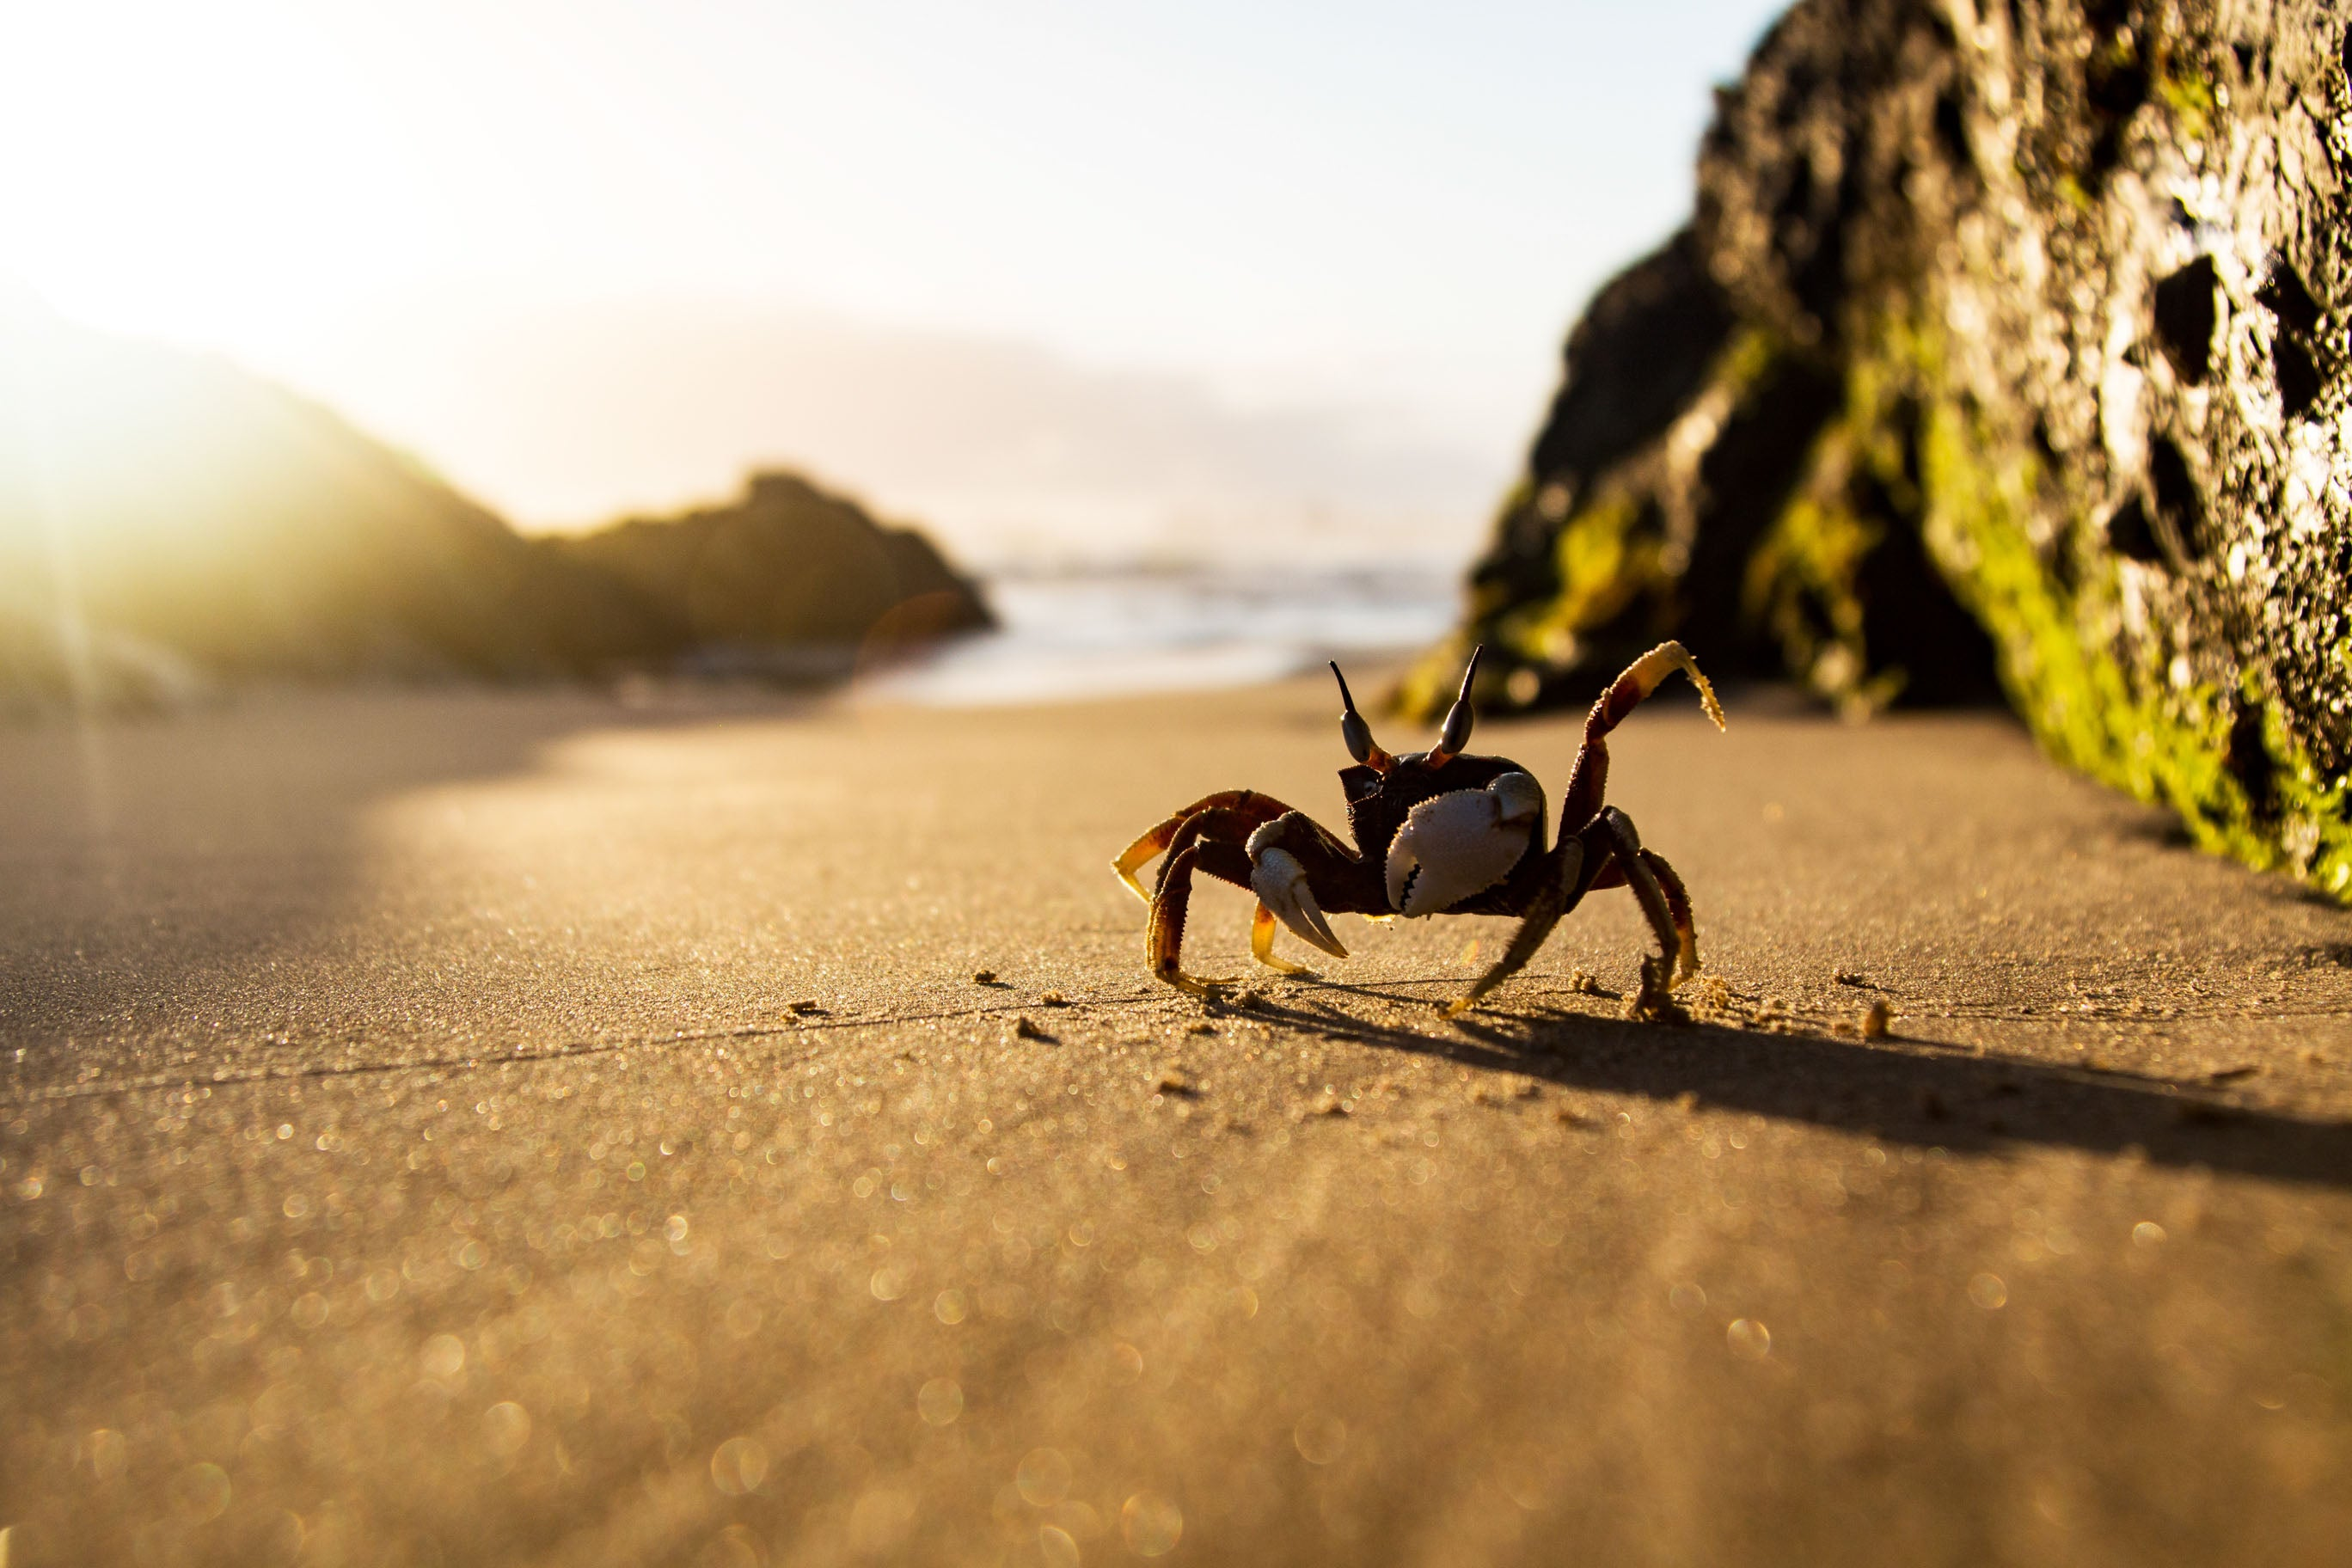 A Crabby Good Morning